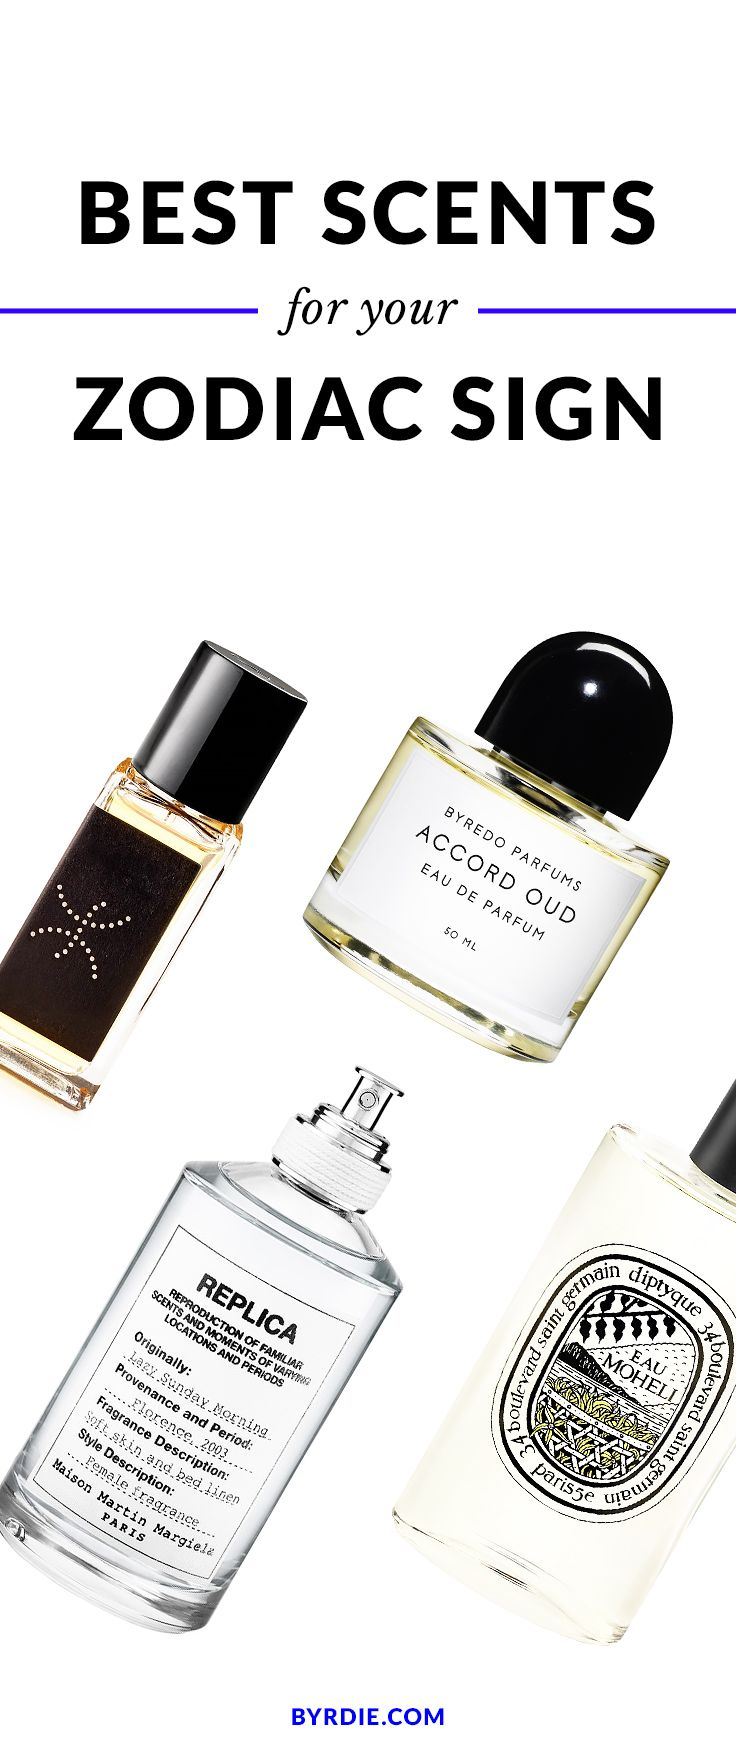 Get the right fragrance for everyone on your list